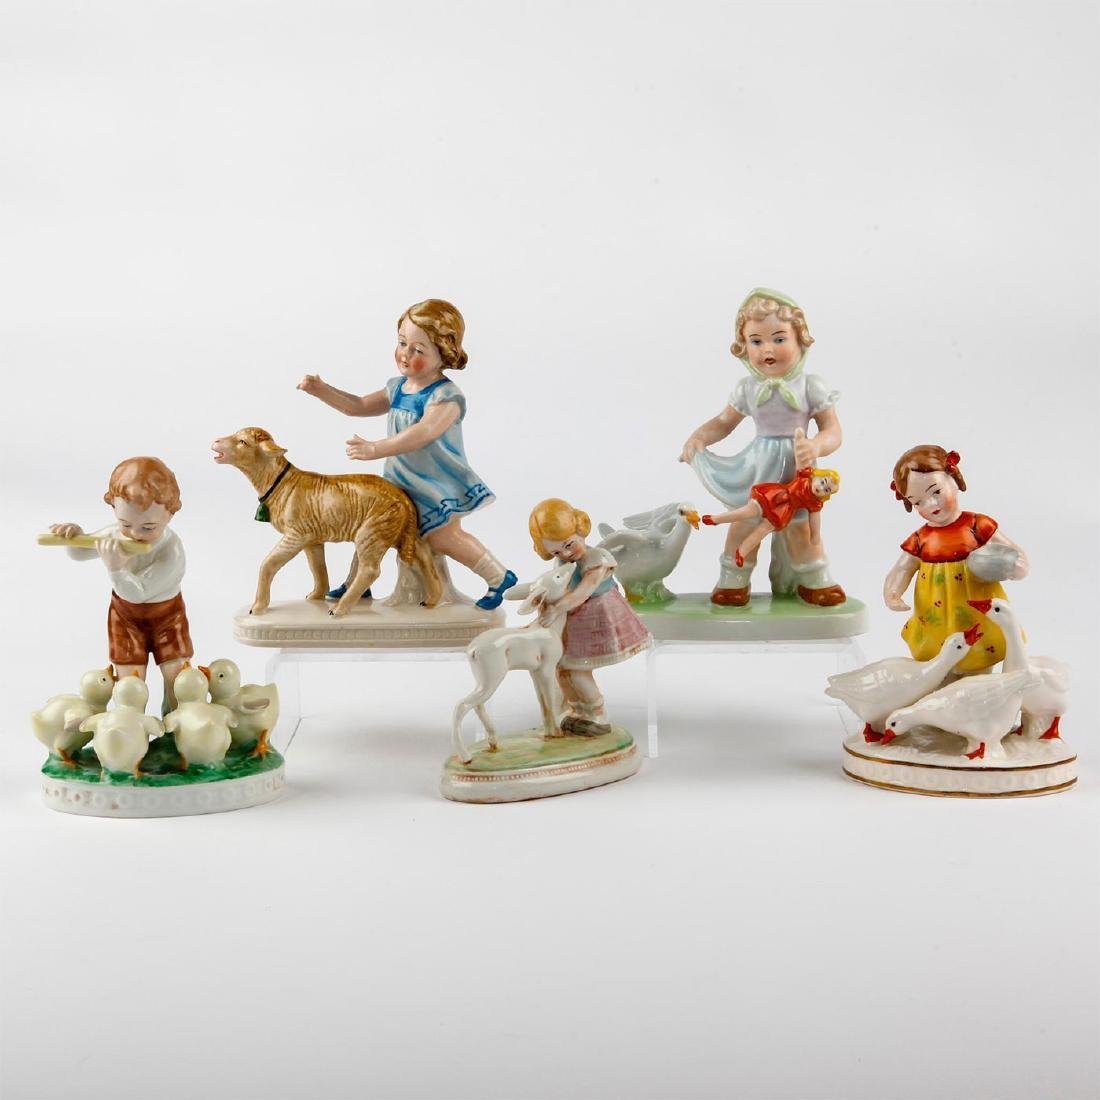 GROUP OF 5 VINTAGE FIGURINES GERMAN CHILDREN